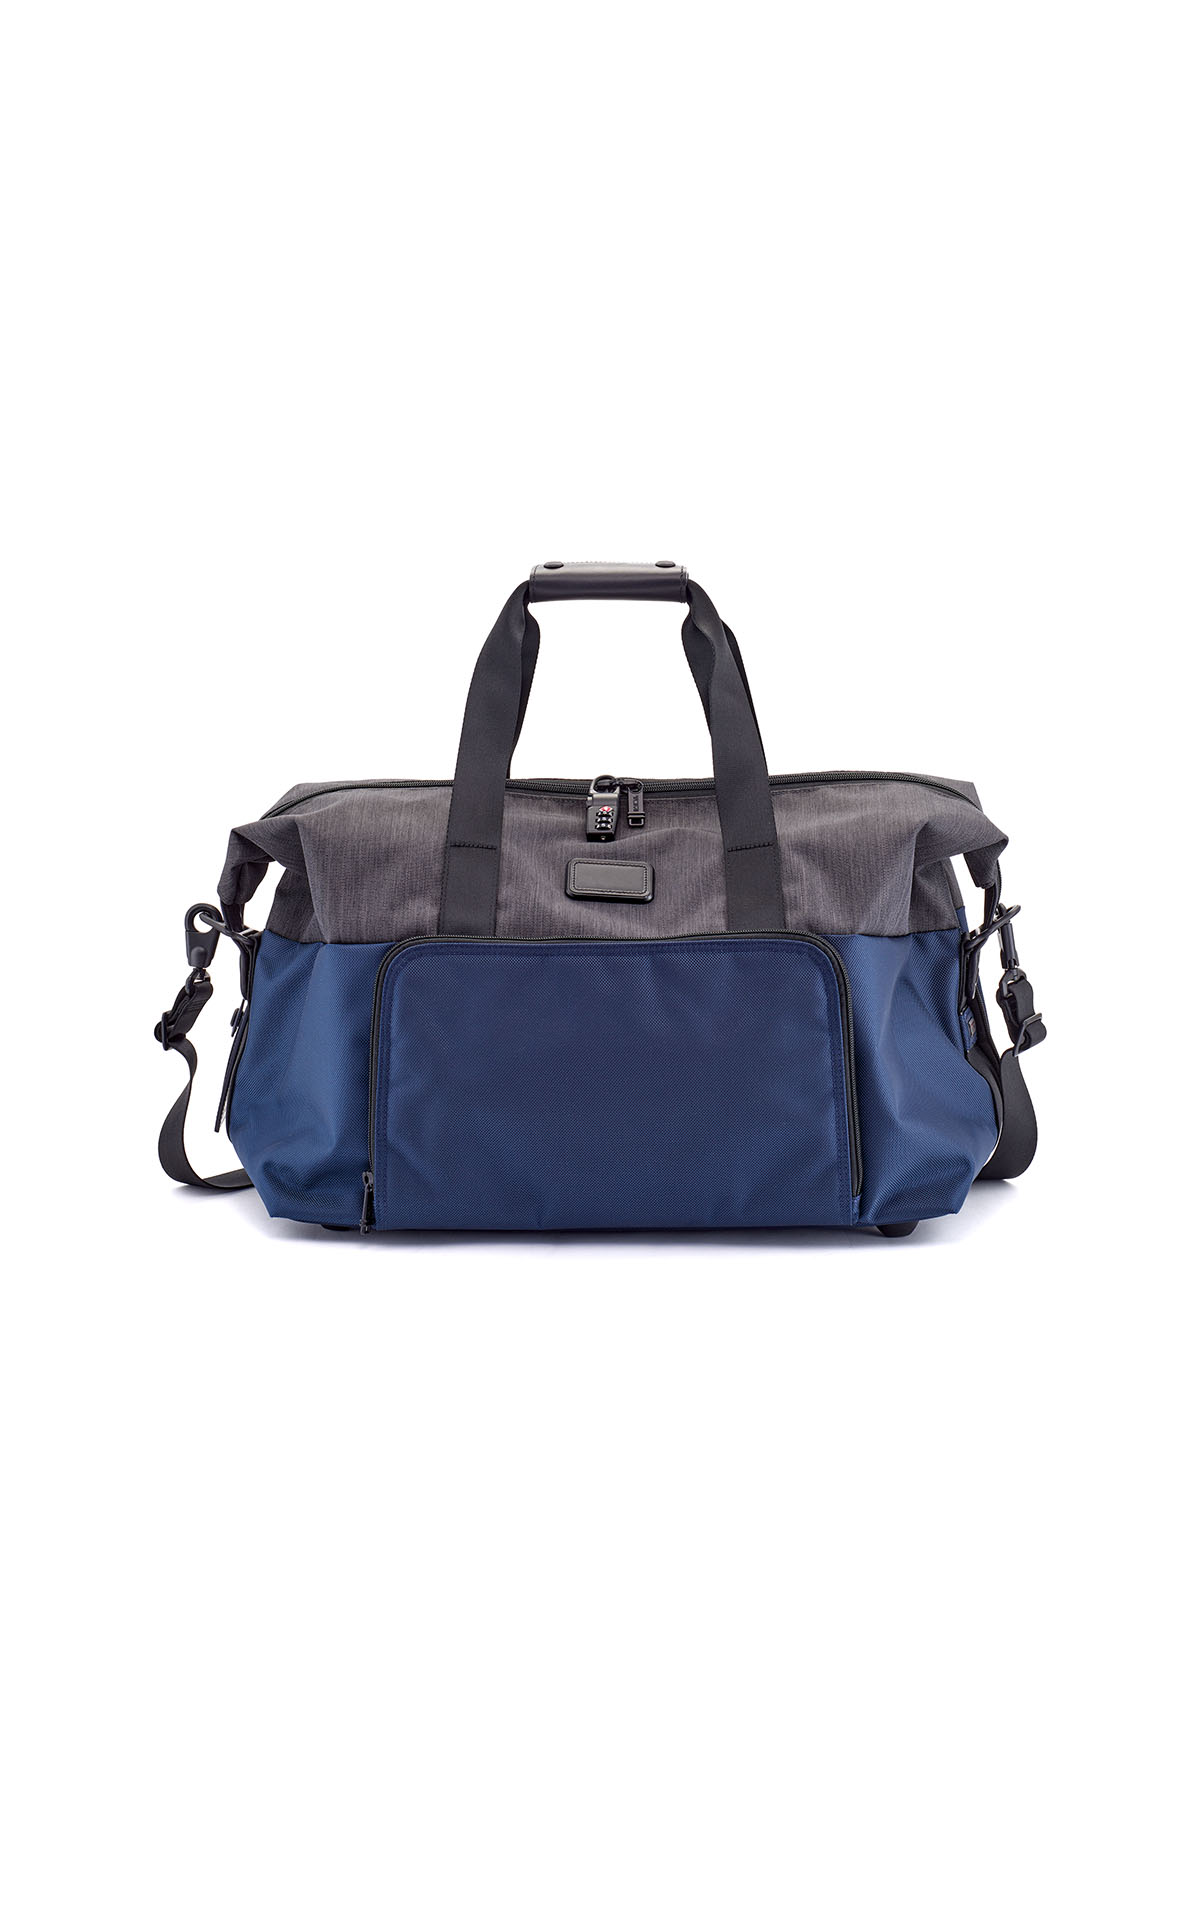 Tumi Soft Travel Satchel at The Bicester Village Shopping Collection